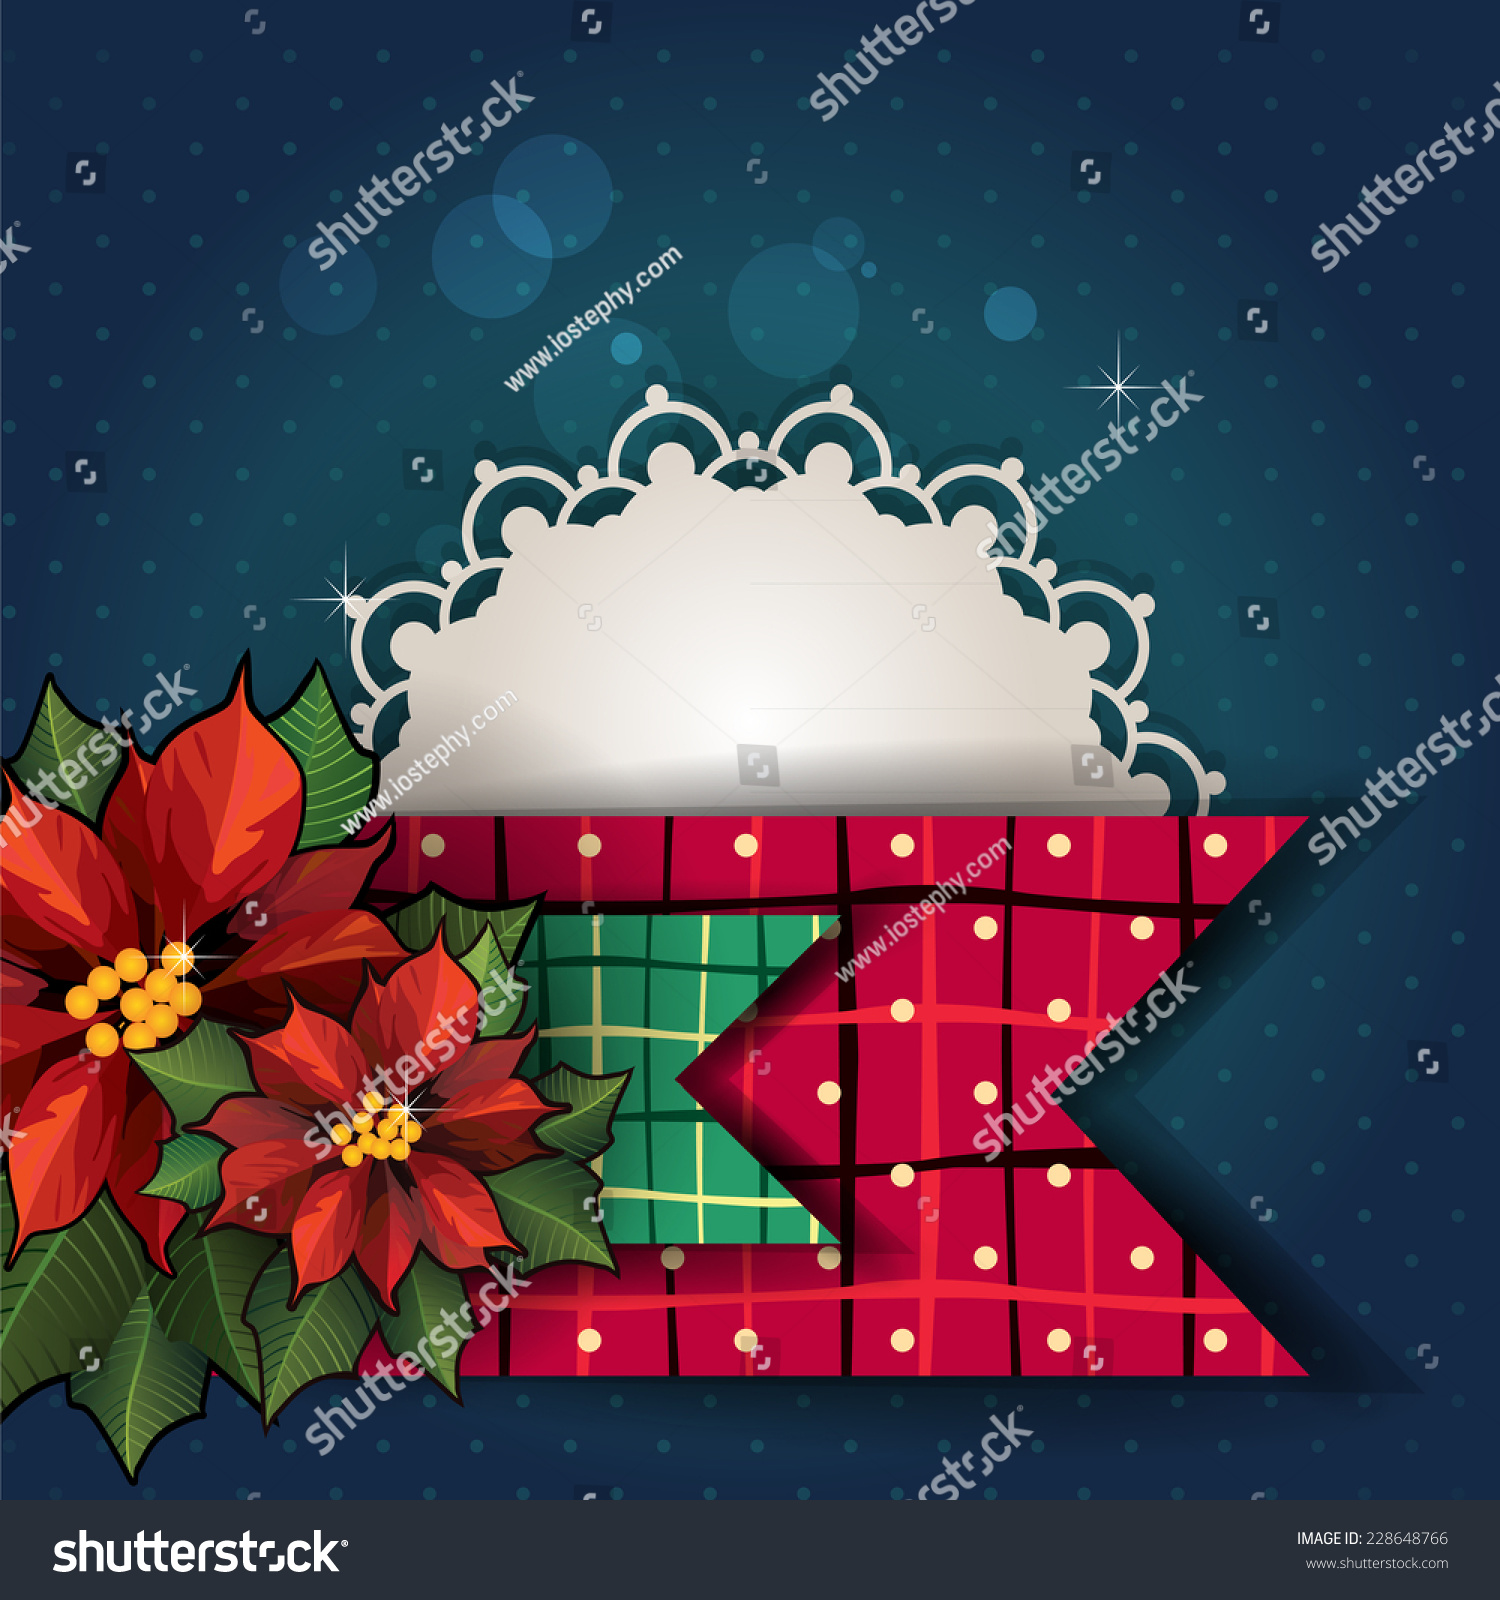 Stars Flowers Christmas Card Blue With Space Stock Illustration ...